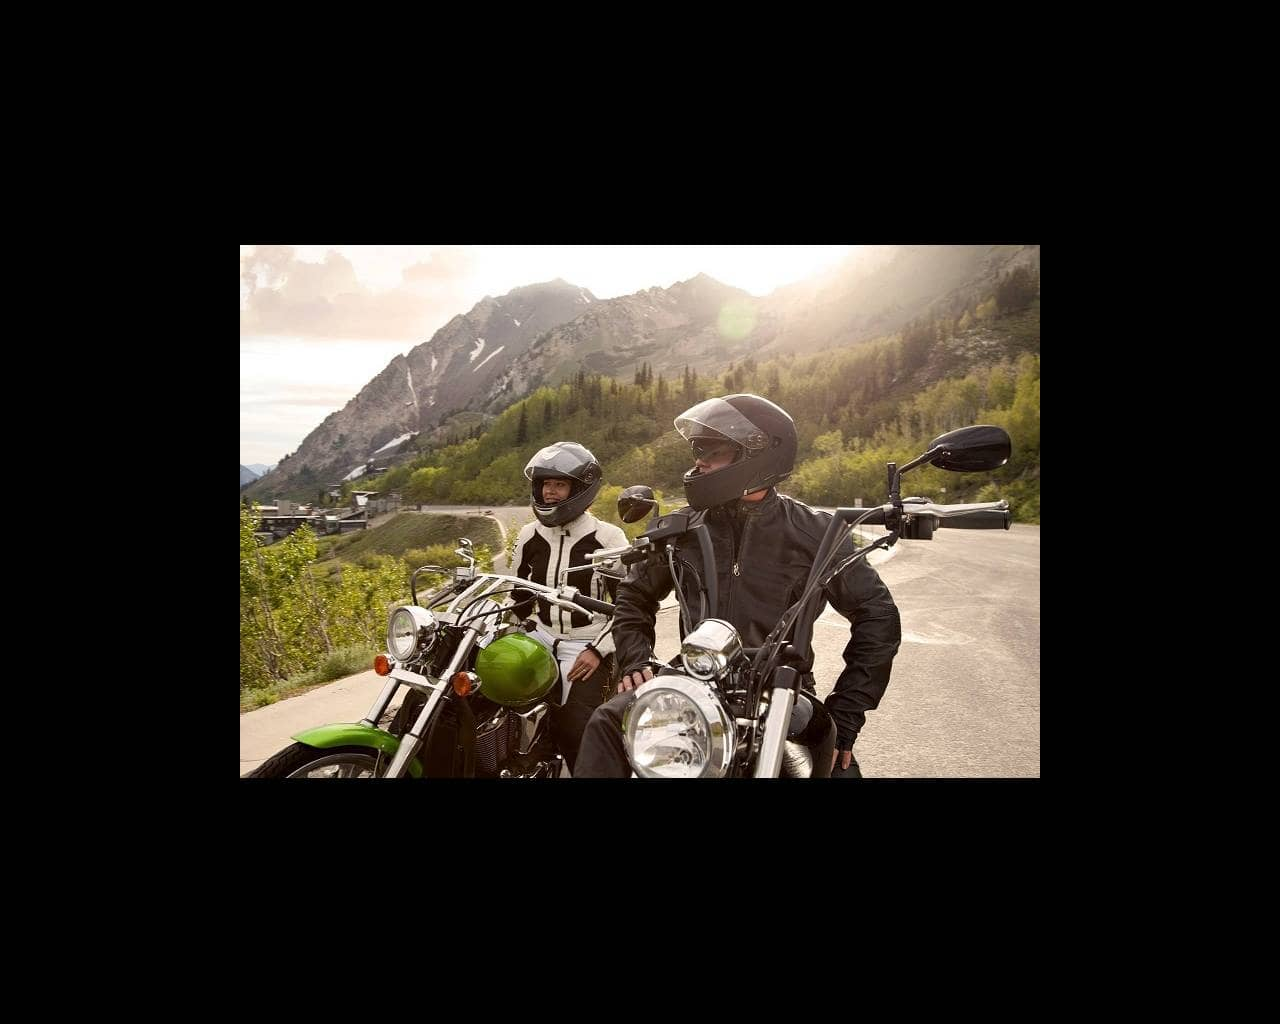 Motorcycle riders in the mountains